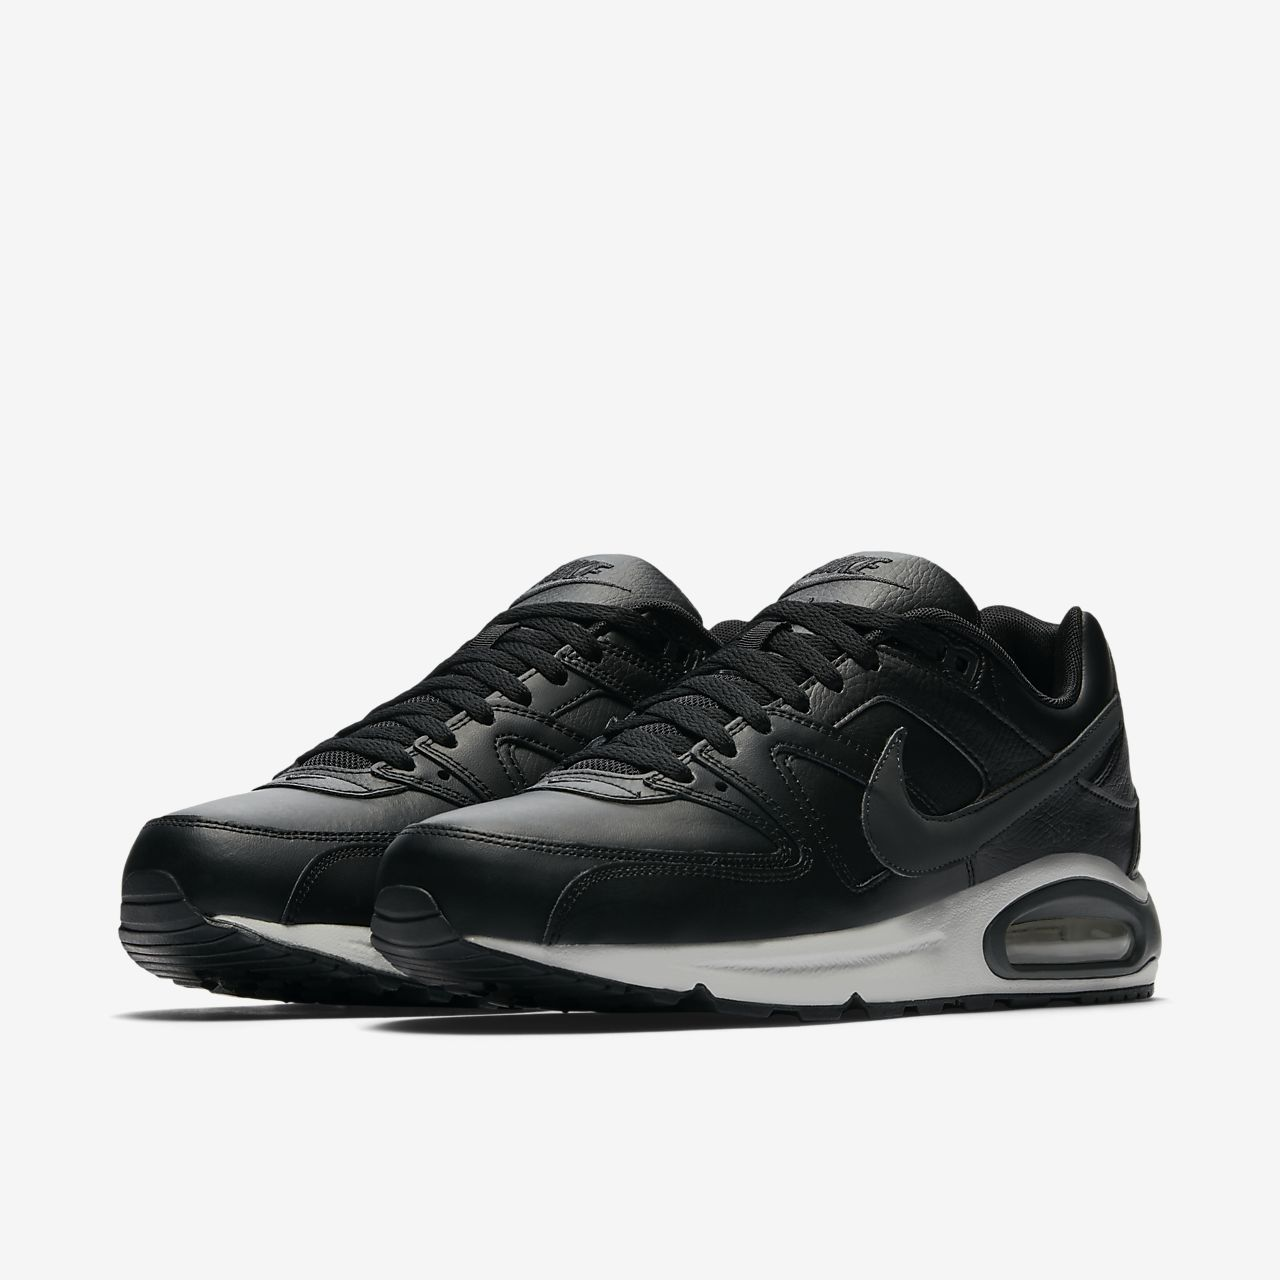 b2ef9ae4ff20 Nike Air Max Command Men s Shoe. Nike.com GB